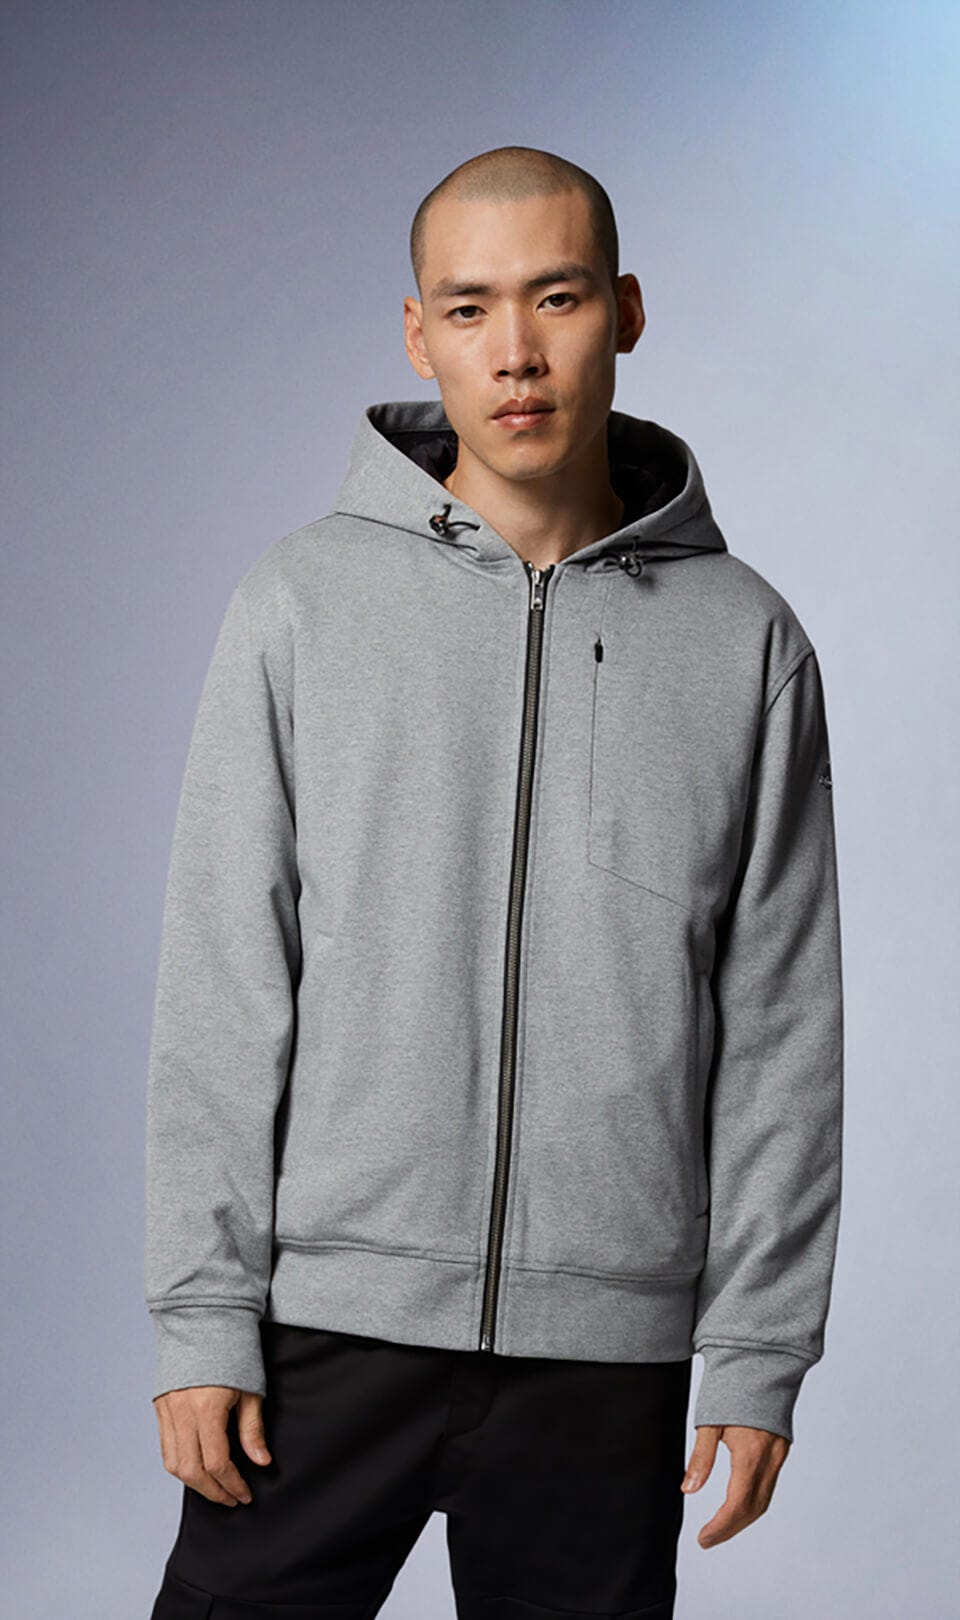 Chilloyneys Hoodie M31MS606 Charcoal Melange Front Category